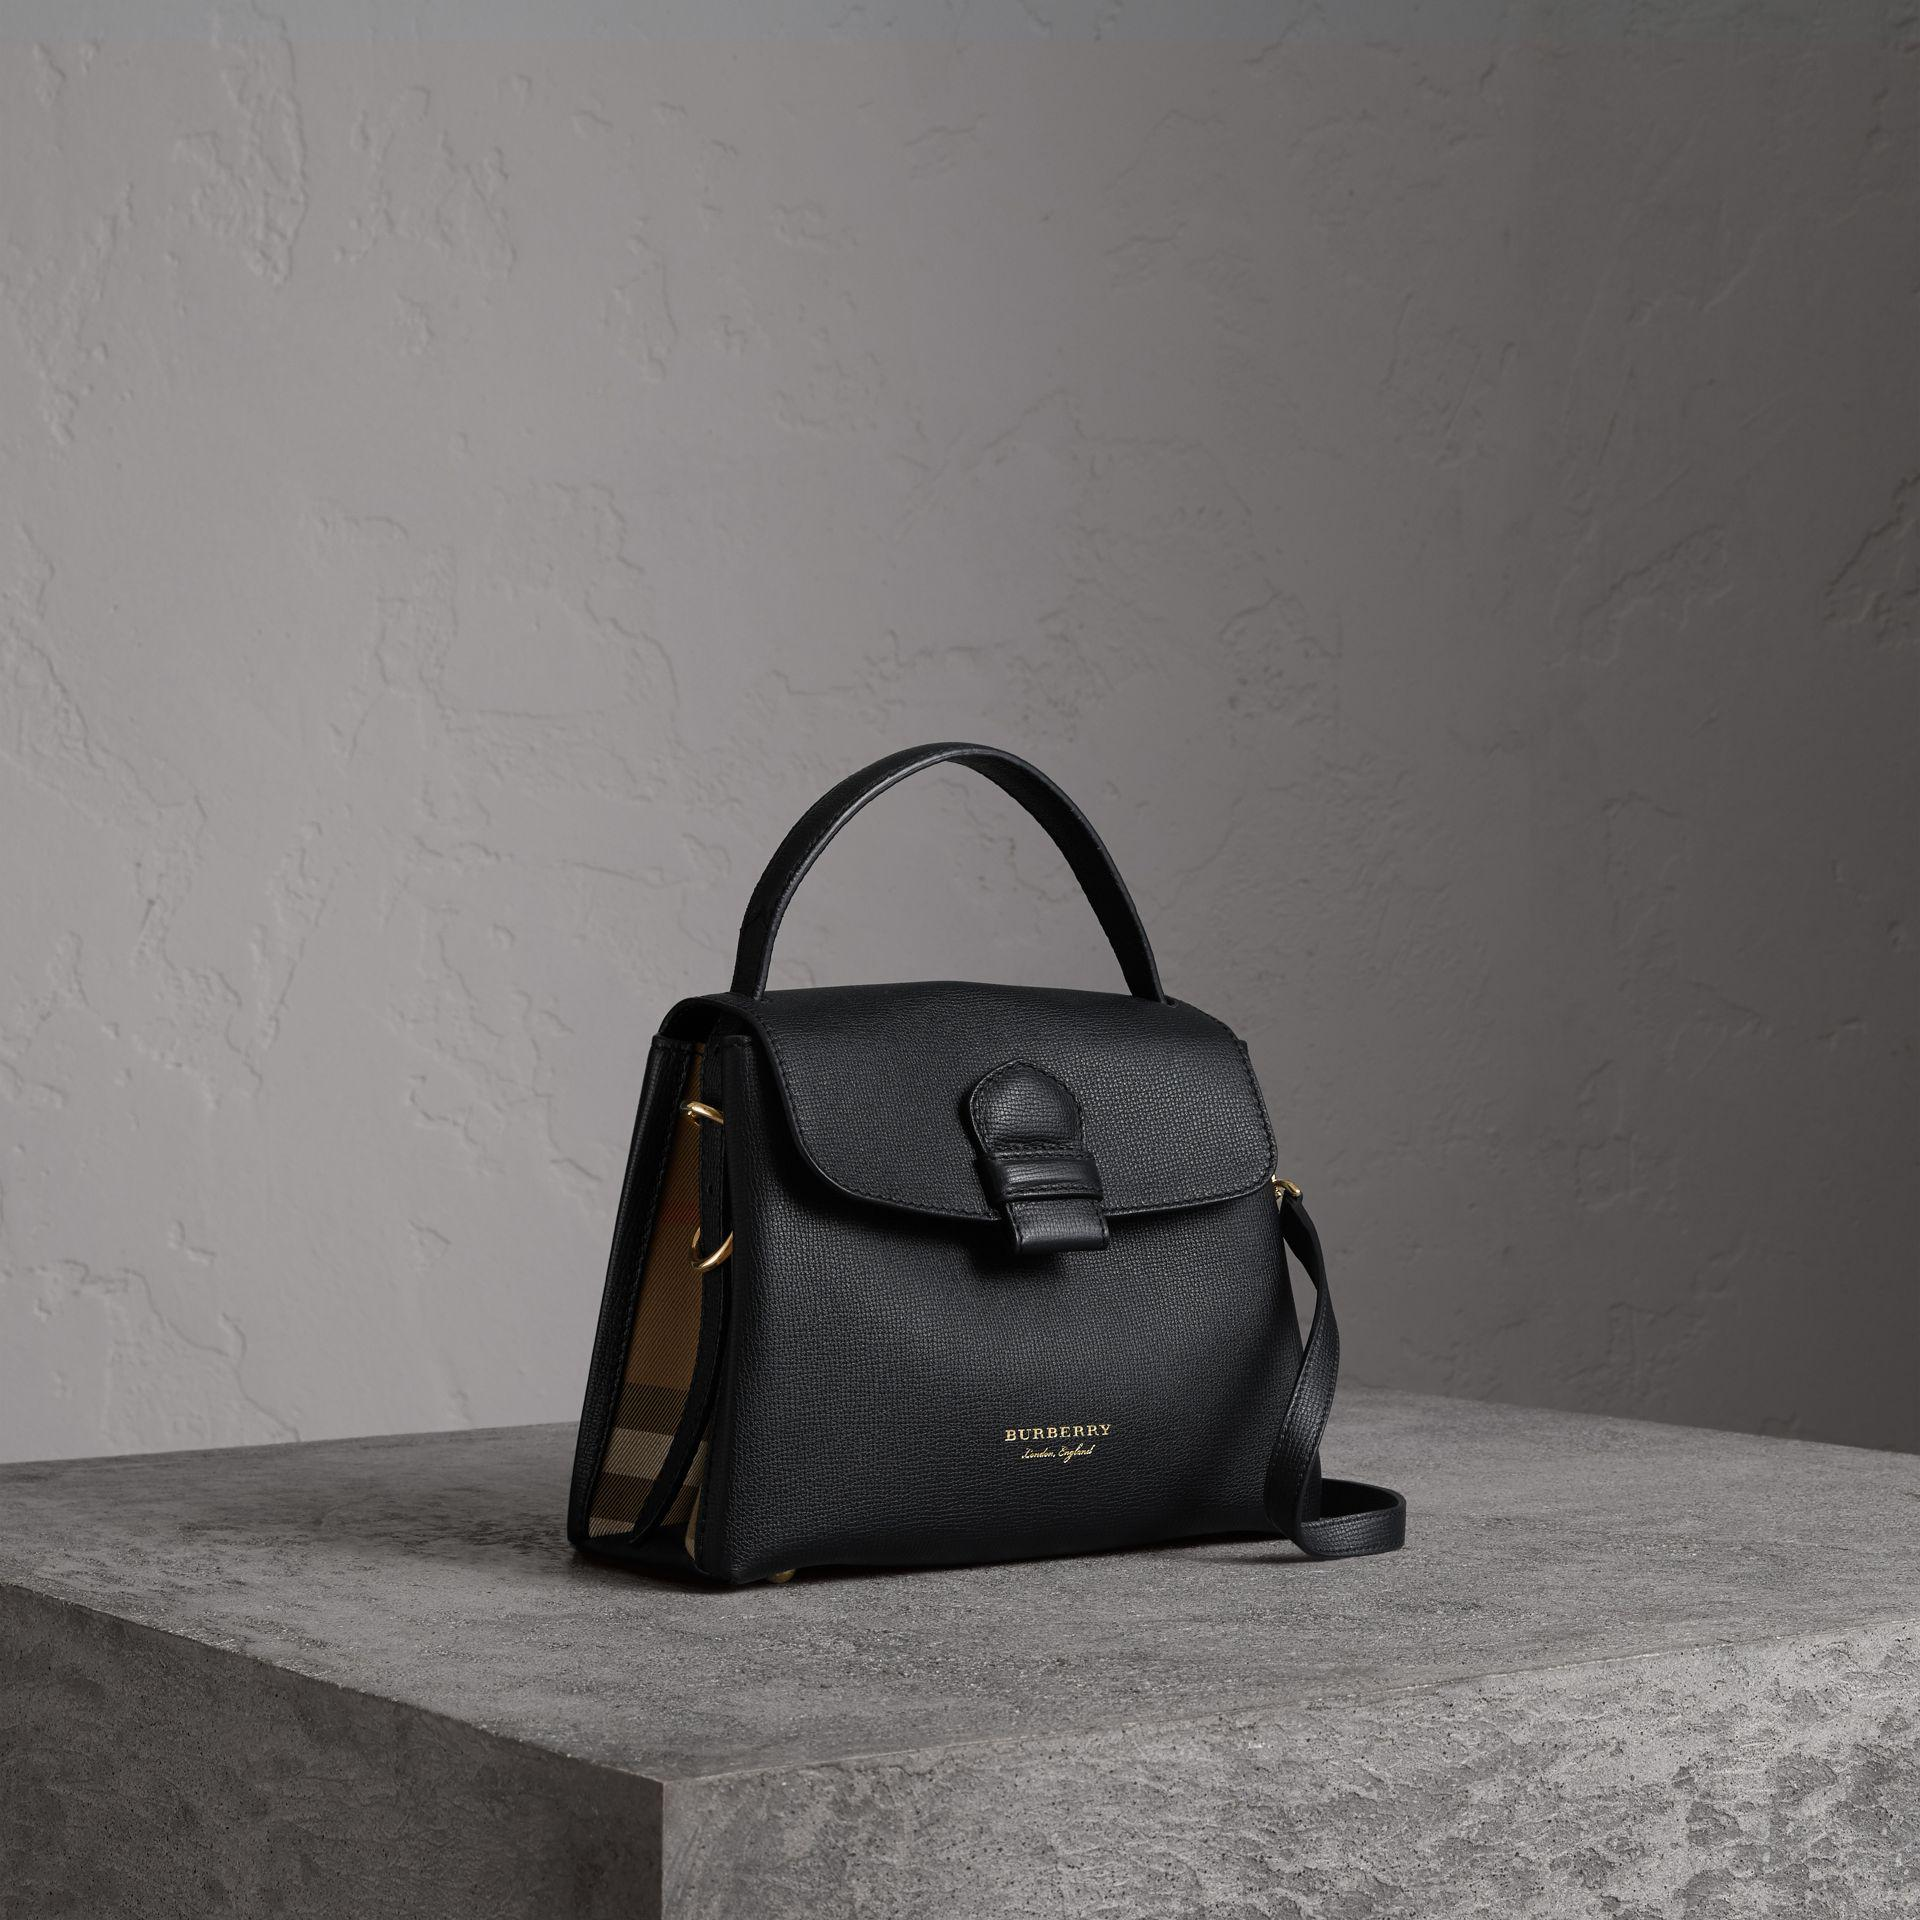 73fe5c1580d1 Burberry Small Grainy Leather And House Check Tote Bag In Black ...